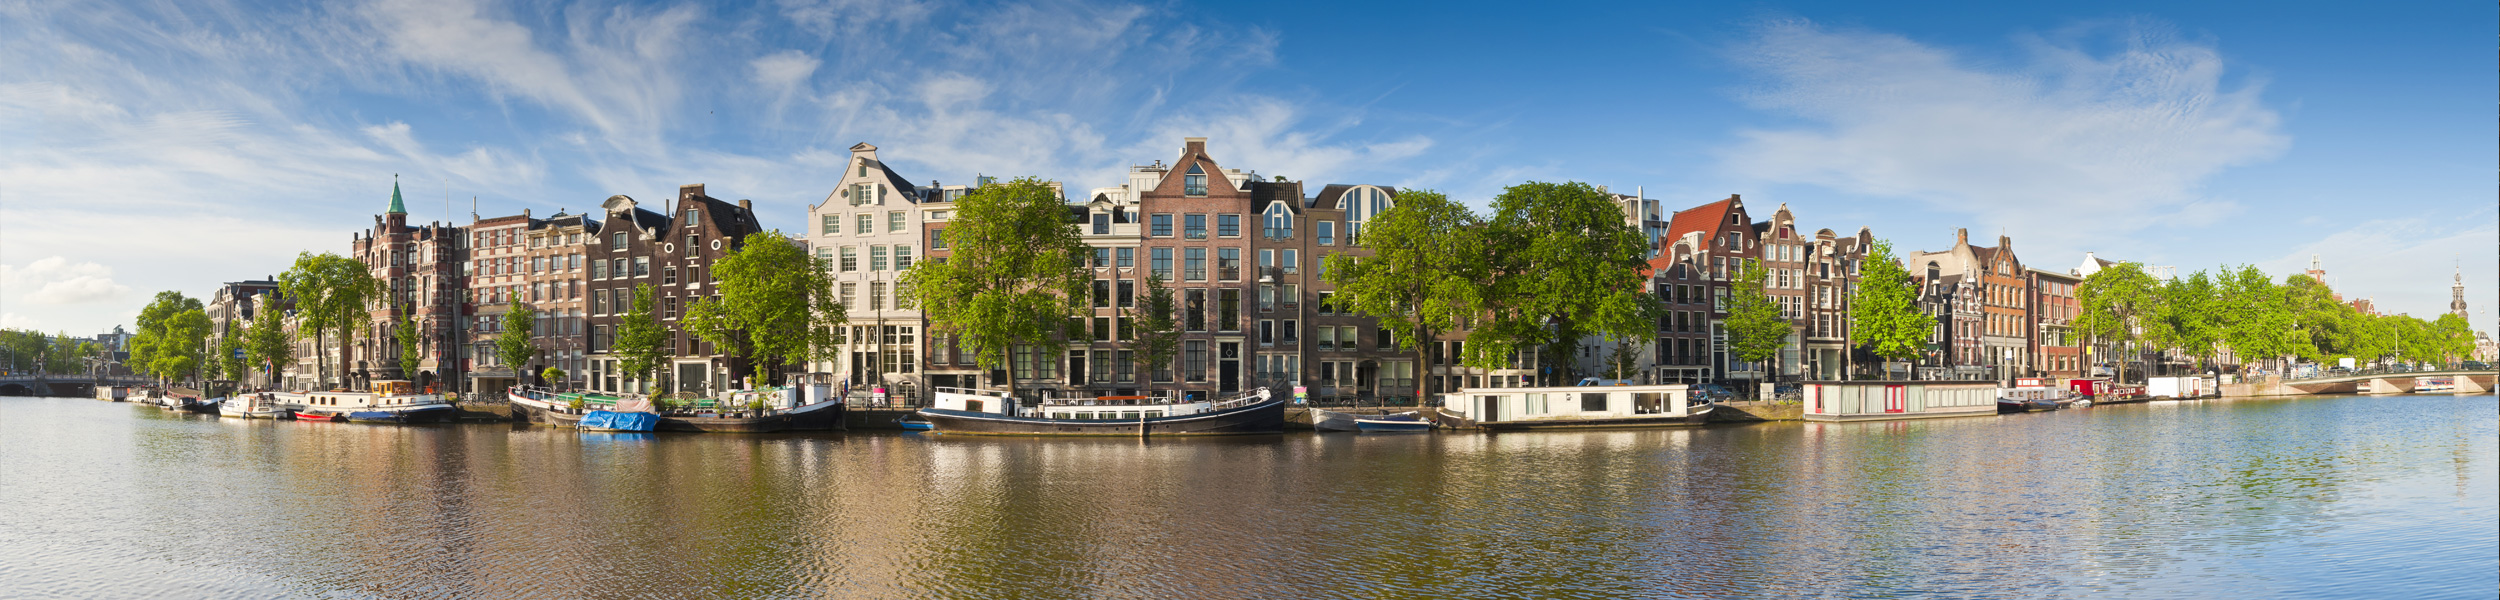 System administrator Amsterdam, The Netherlands